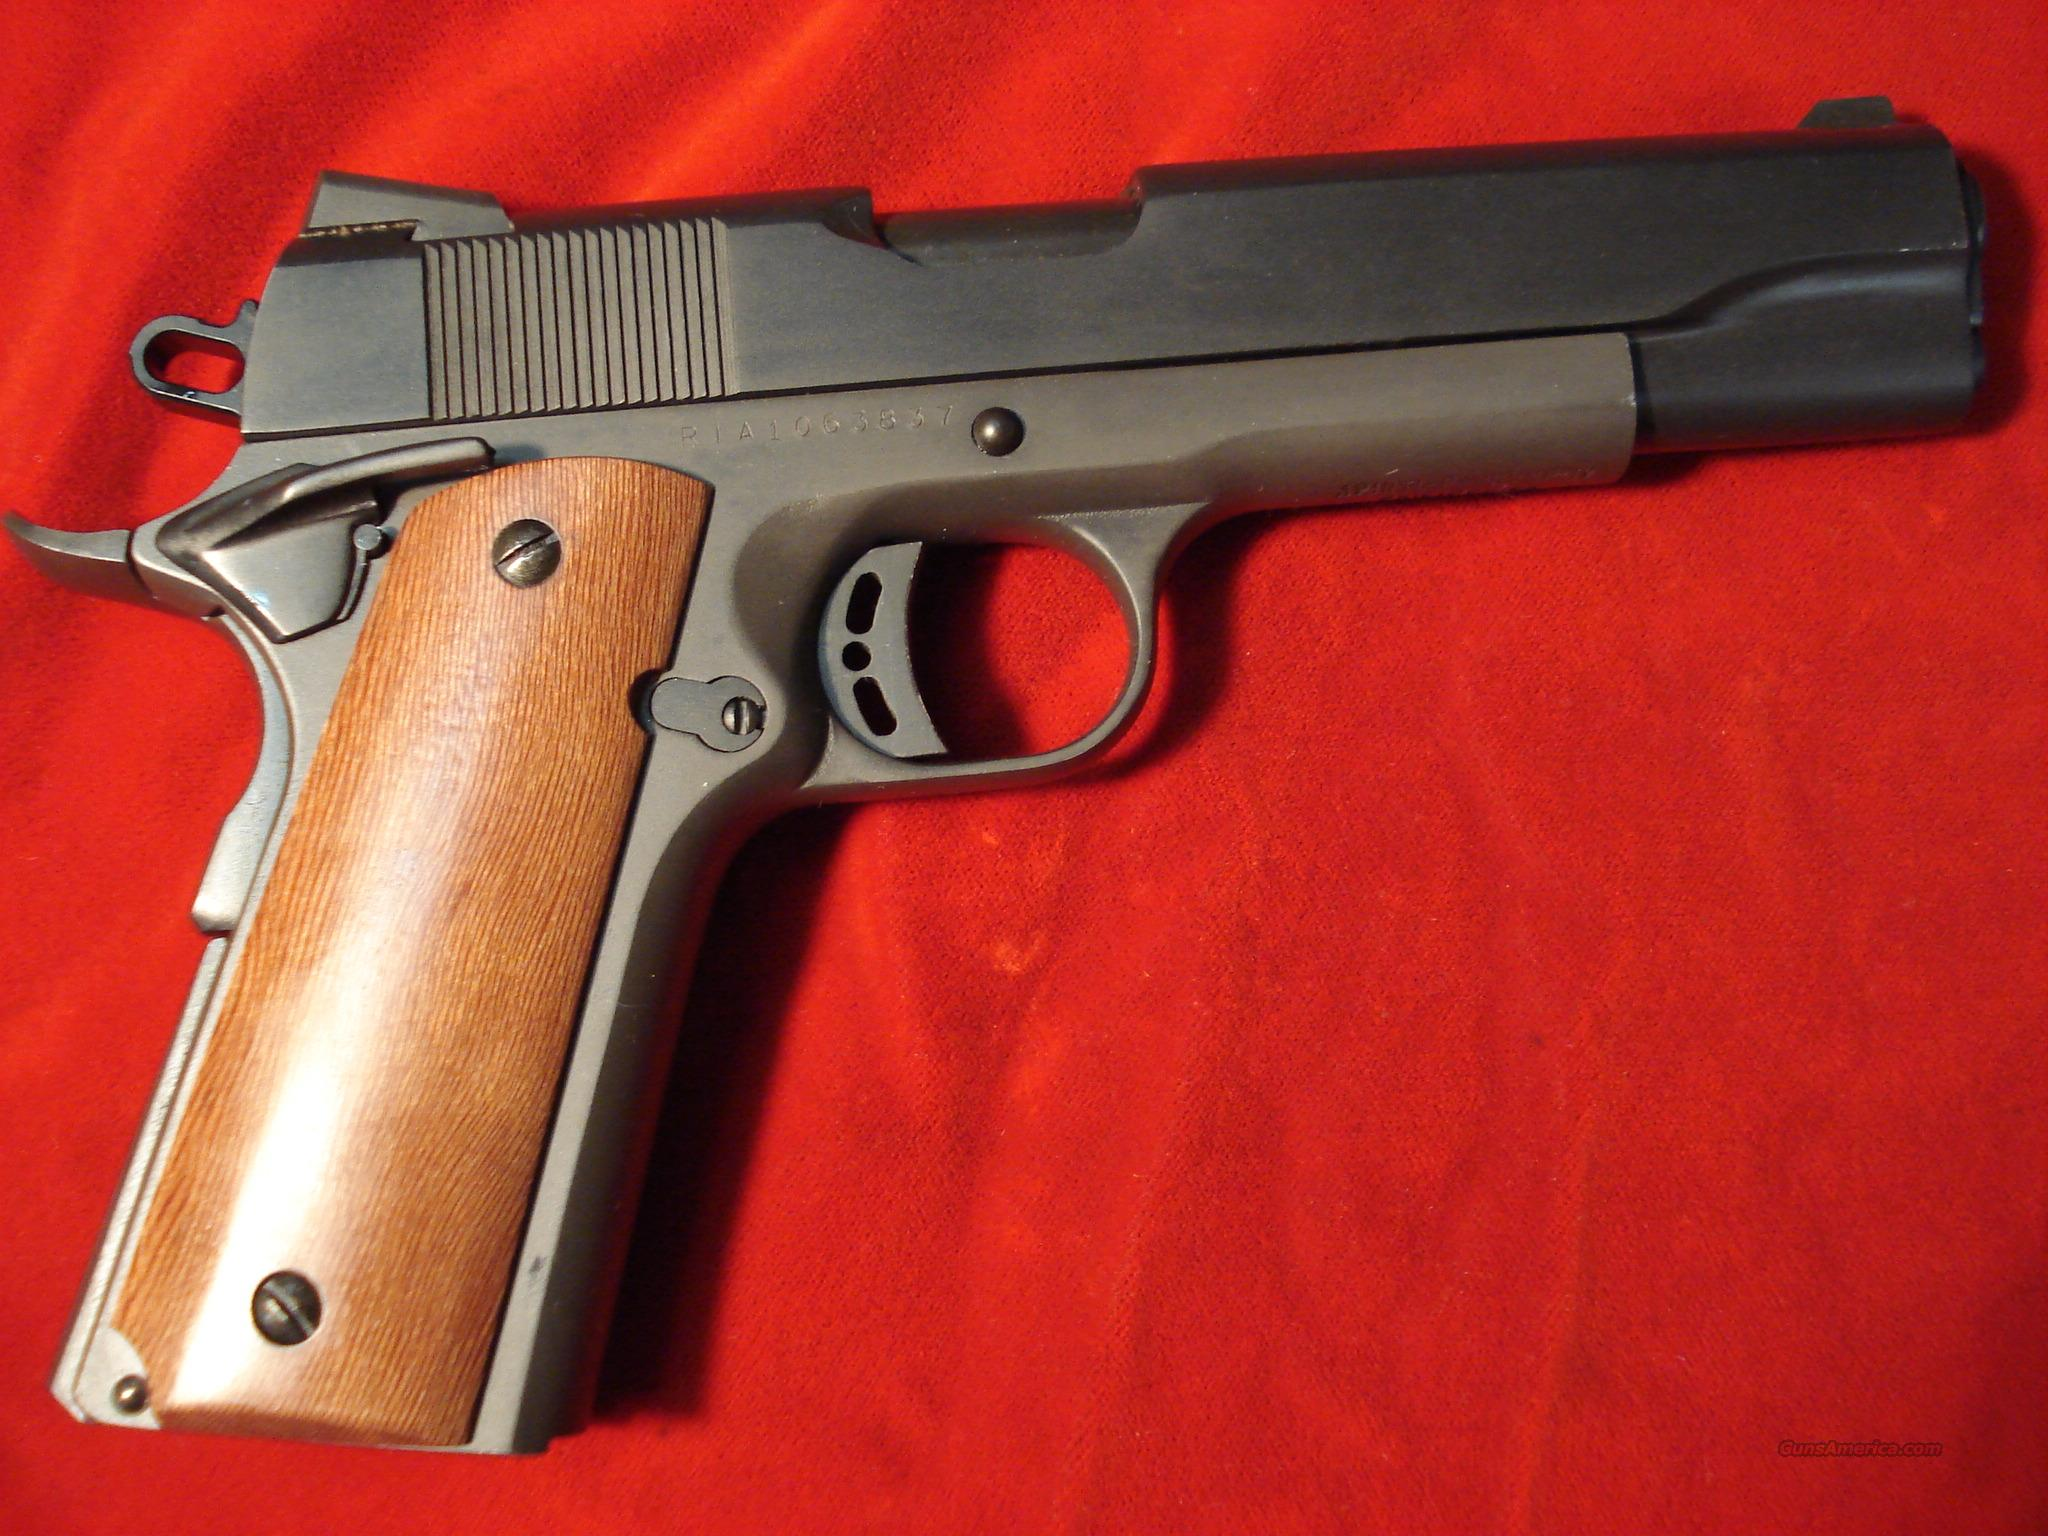 ROCK ISLAND ARMORY 1911-A1 FS TACTICAL NEW  Guns > Pistols > 1911 Pistol Copies (non-Colt)